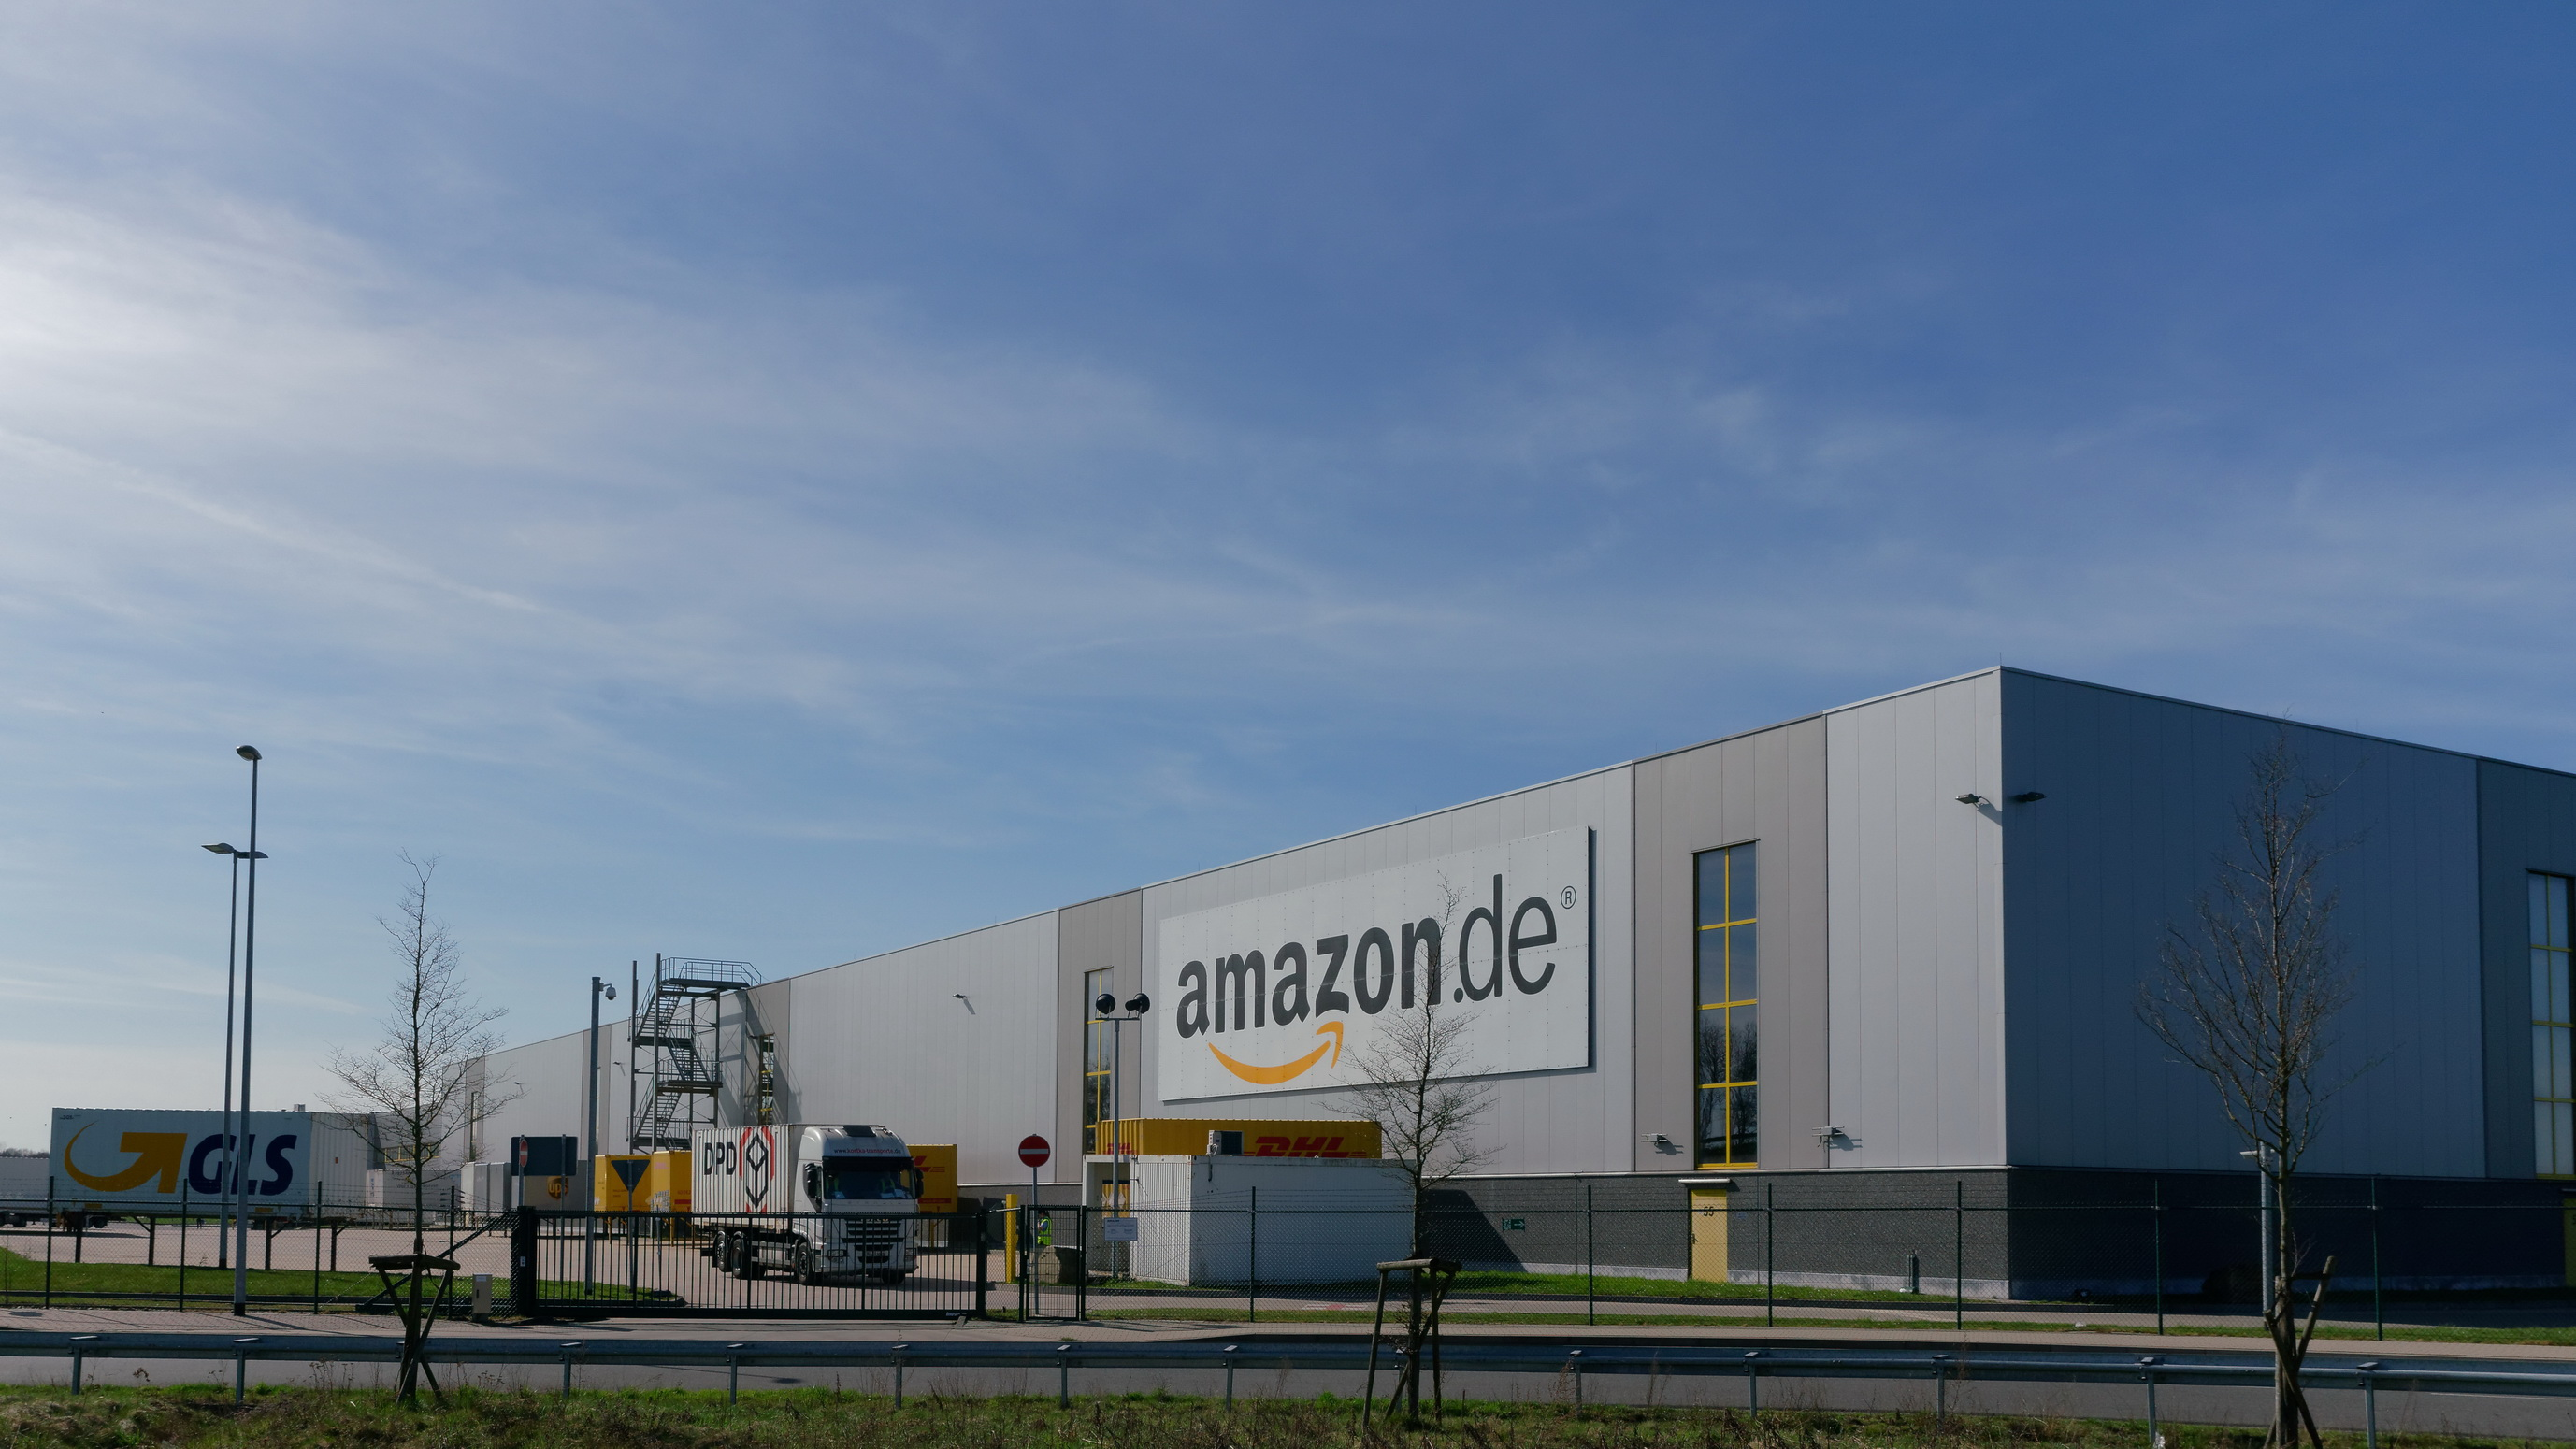 Ein Bild des Amazon Logistikzentrums